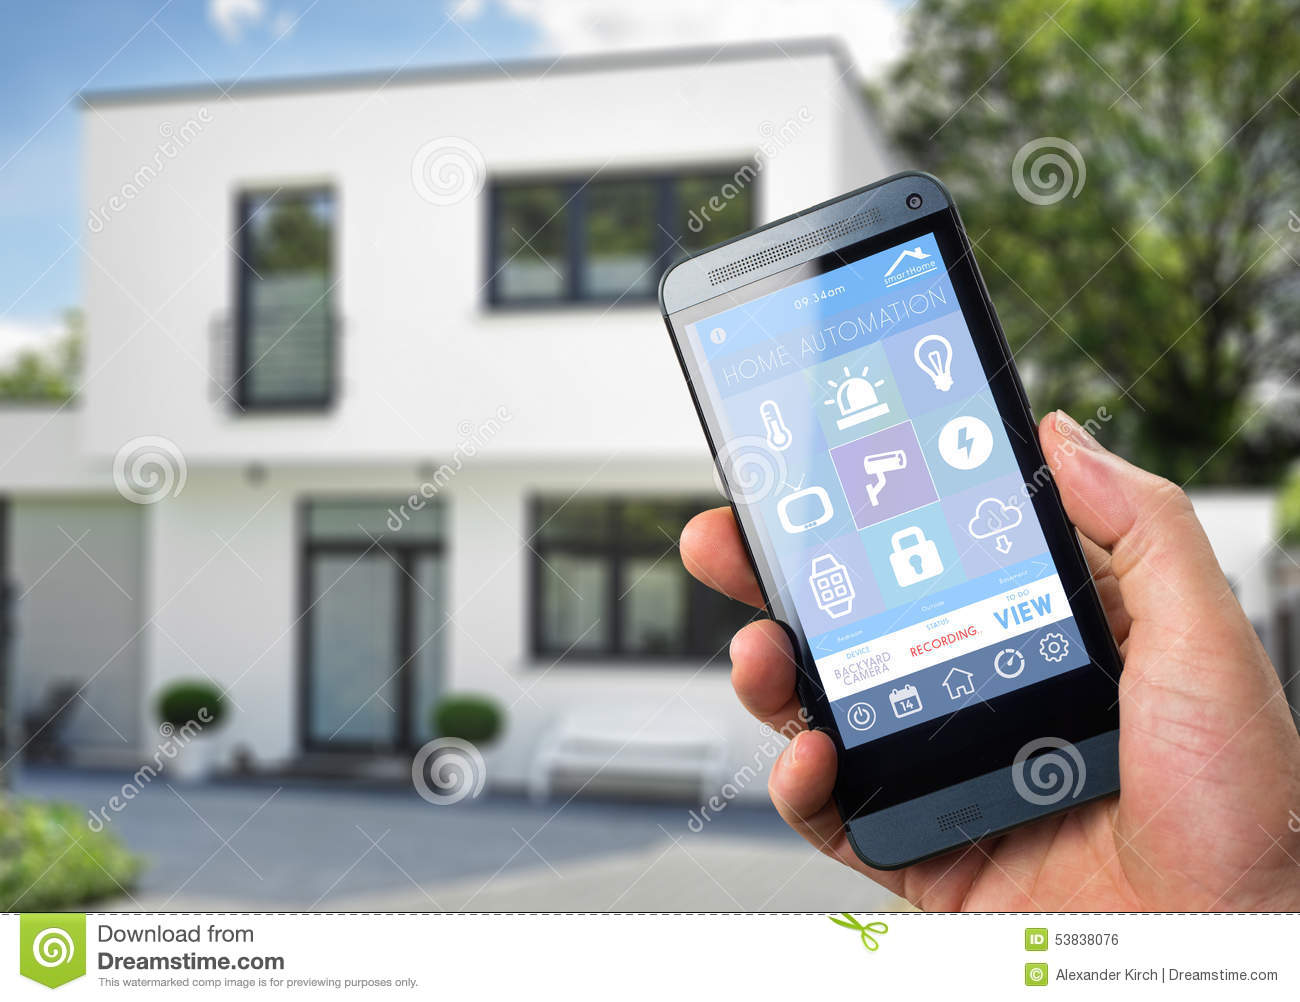 Smart home device home control stock illustration - Control lights with smartphone ...